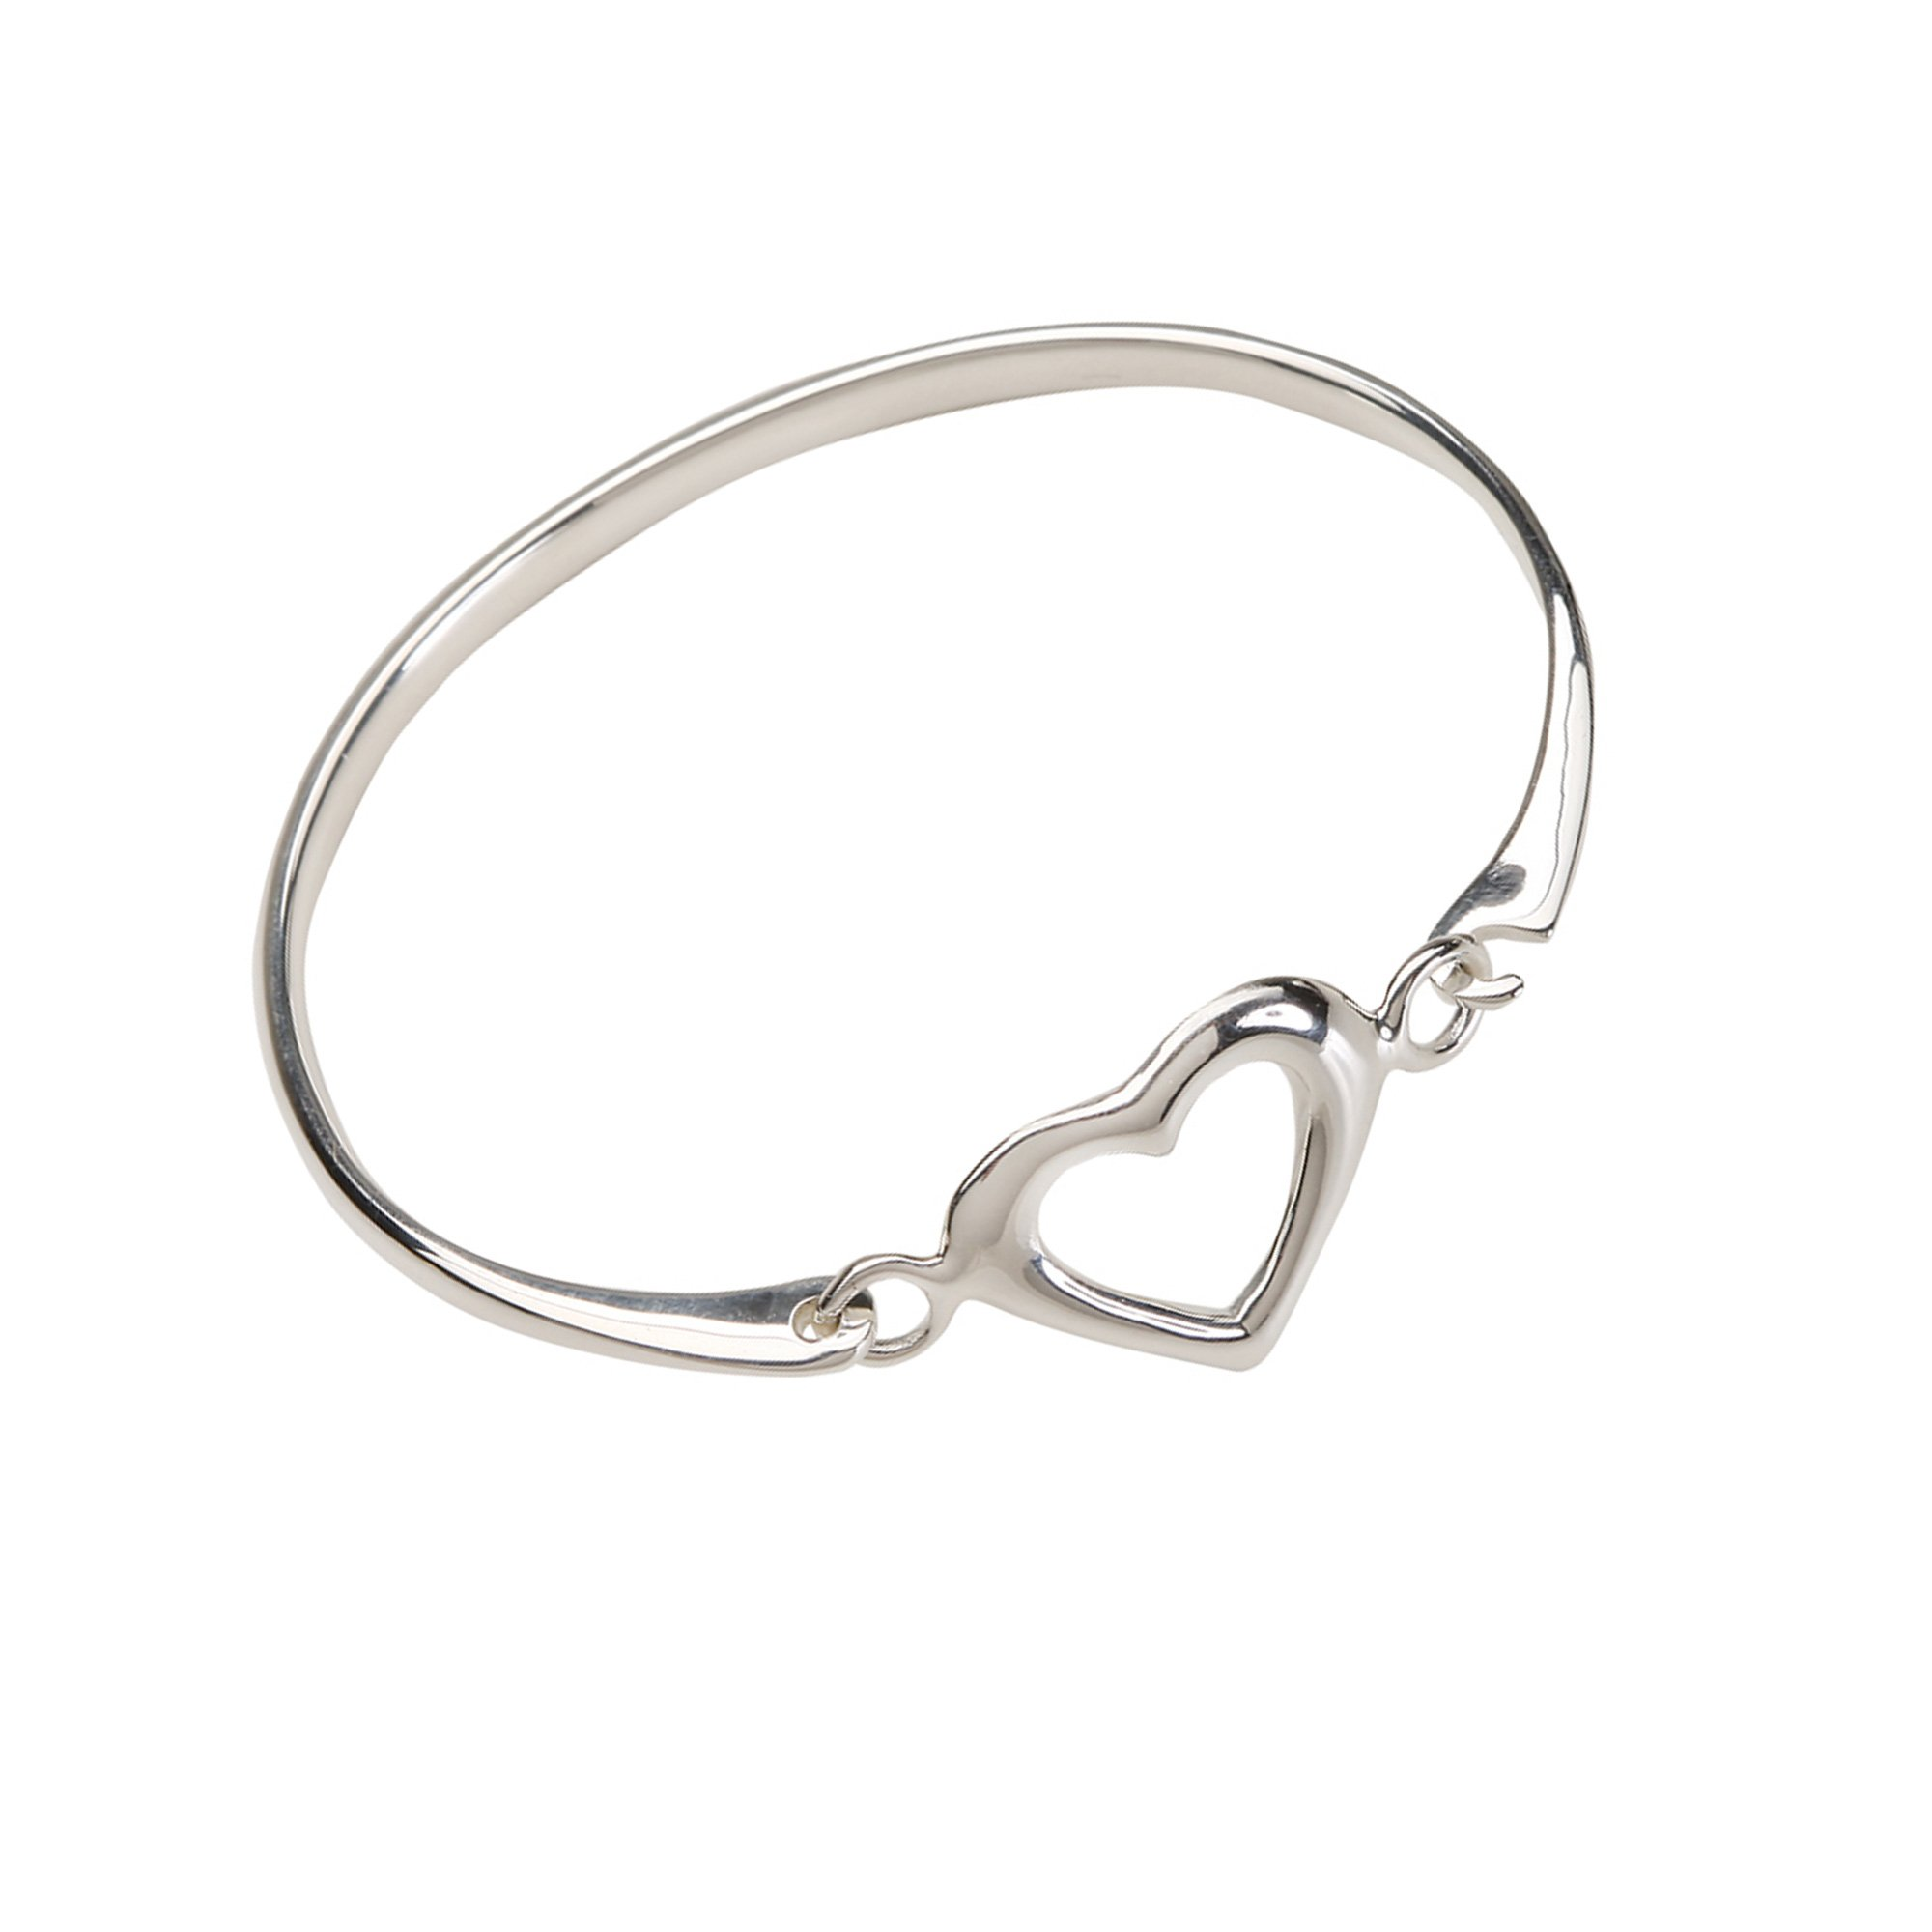 silver s bracelet bangles hinged stunning ct in p bangle sterling heart ebay diamond